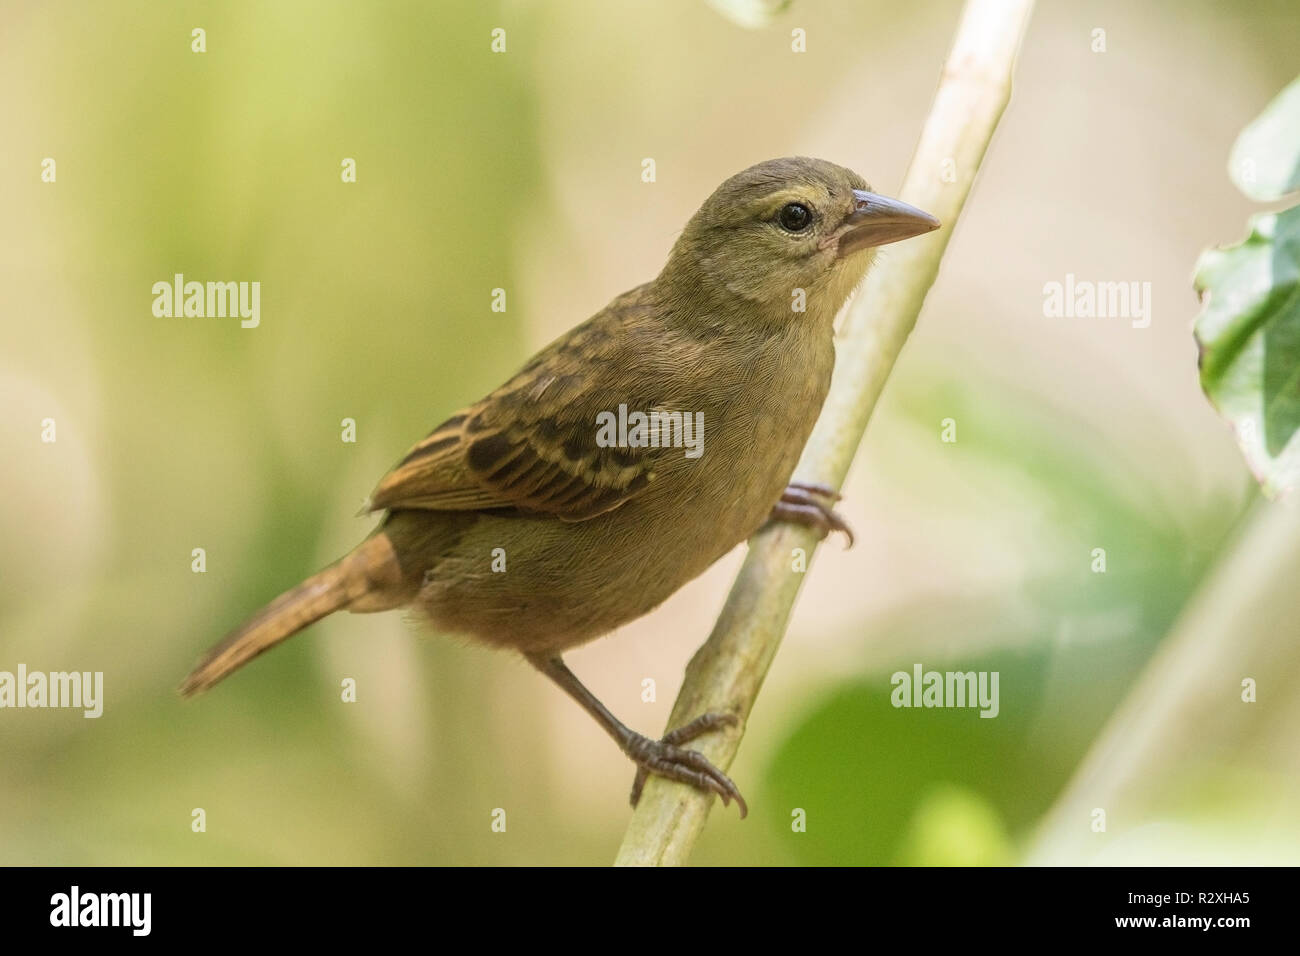 Seychelles fody Foudia sechellarum adult female perched on branch of tree, Cousin island, Seychelles, Indian Ocean - Stock Image